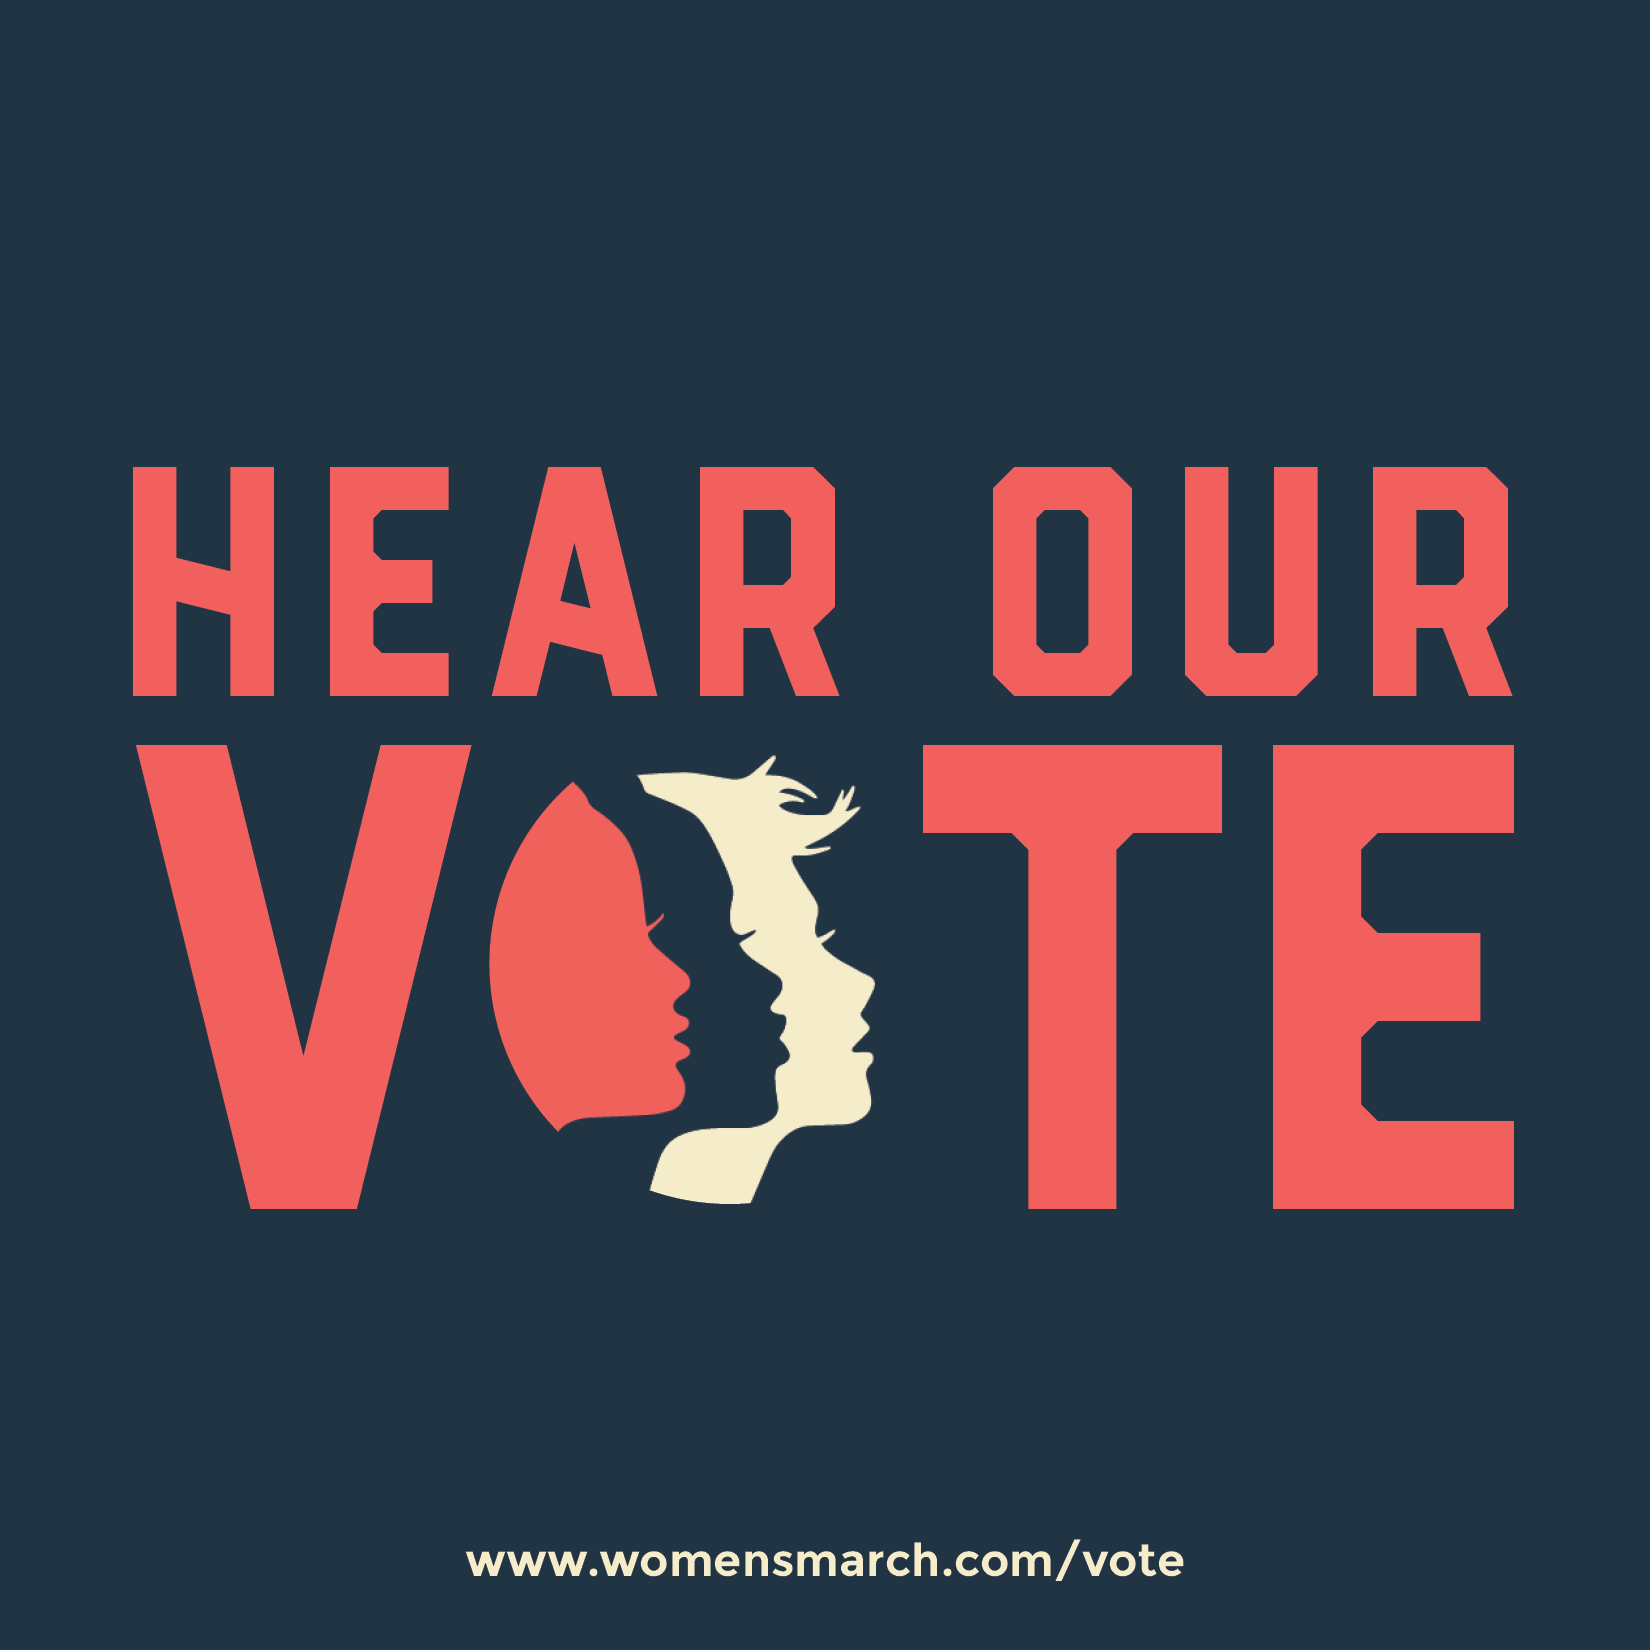 Hear_our_vote_logo